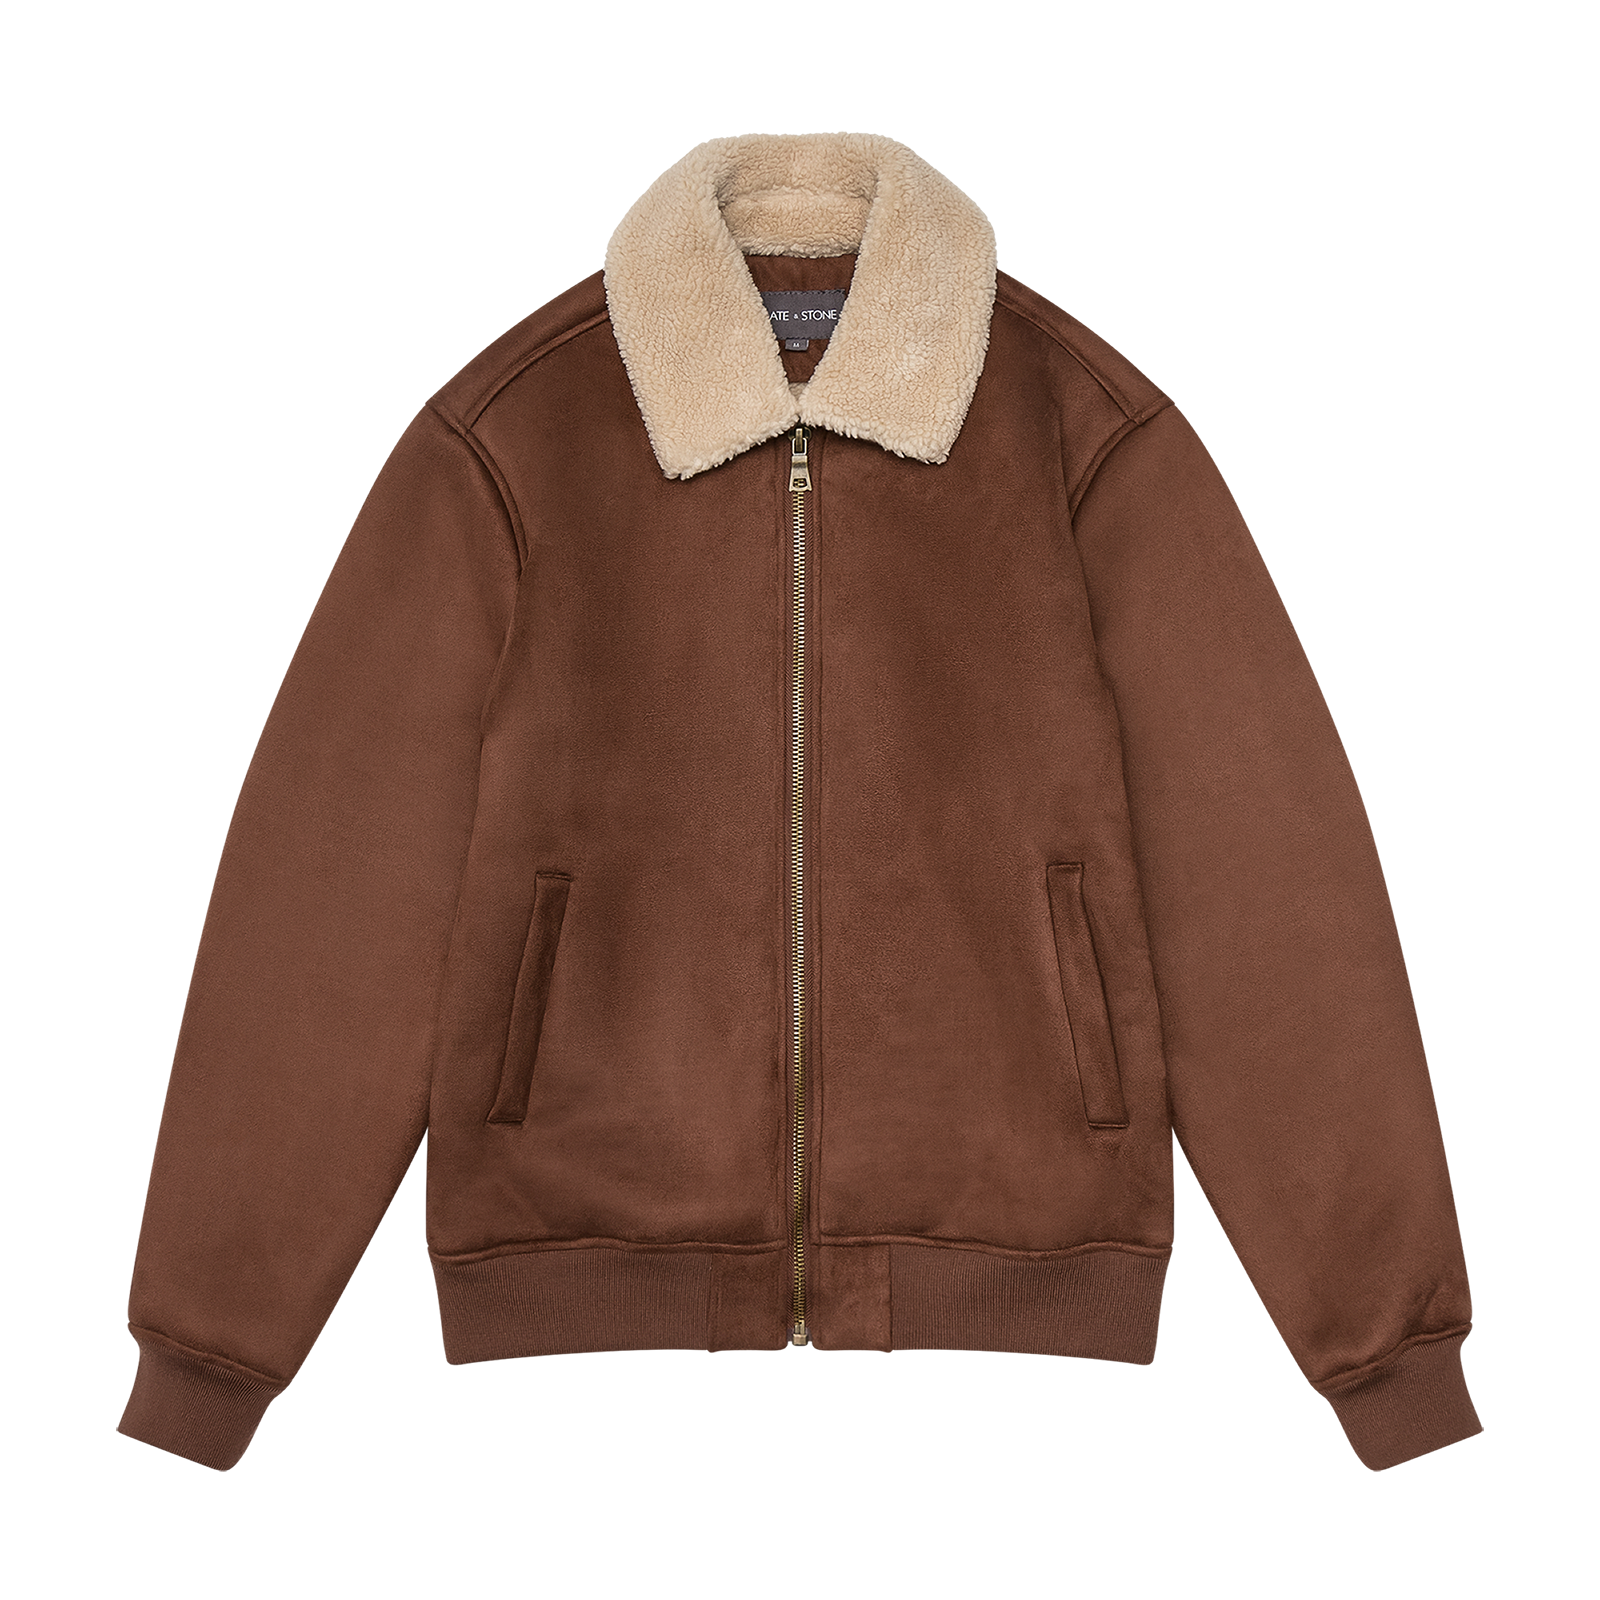 Winter jacket product picture